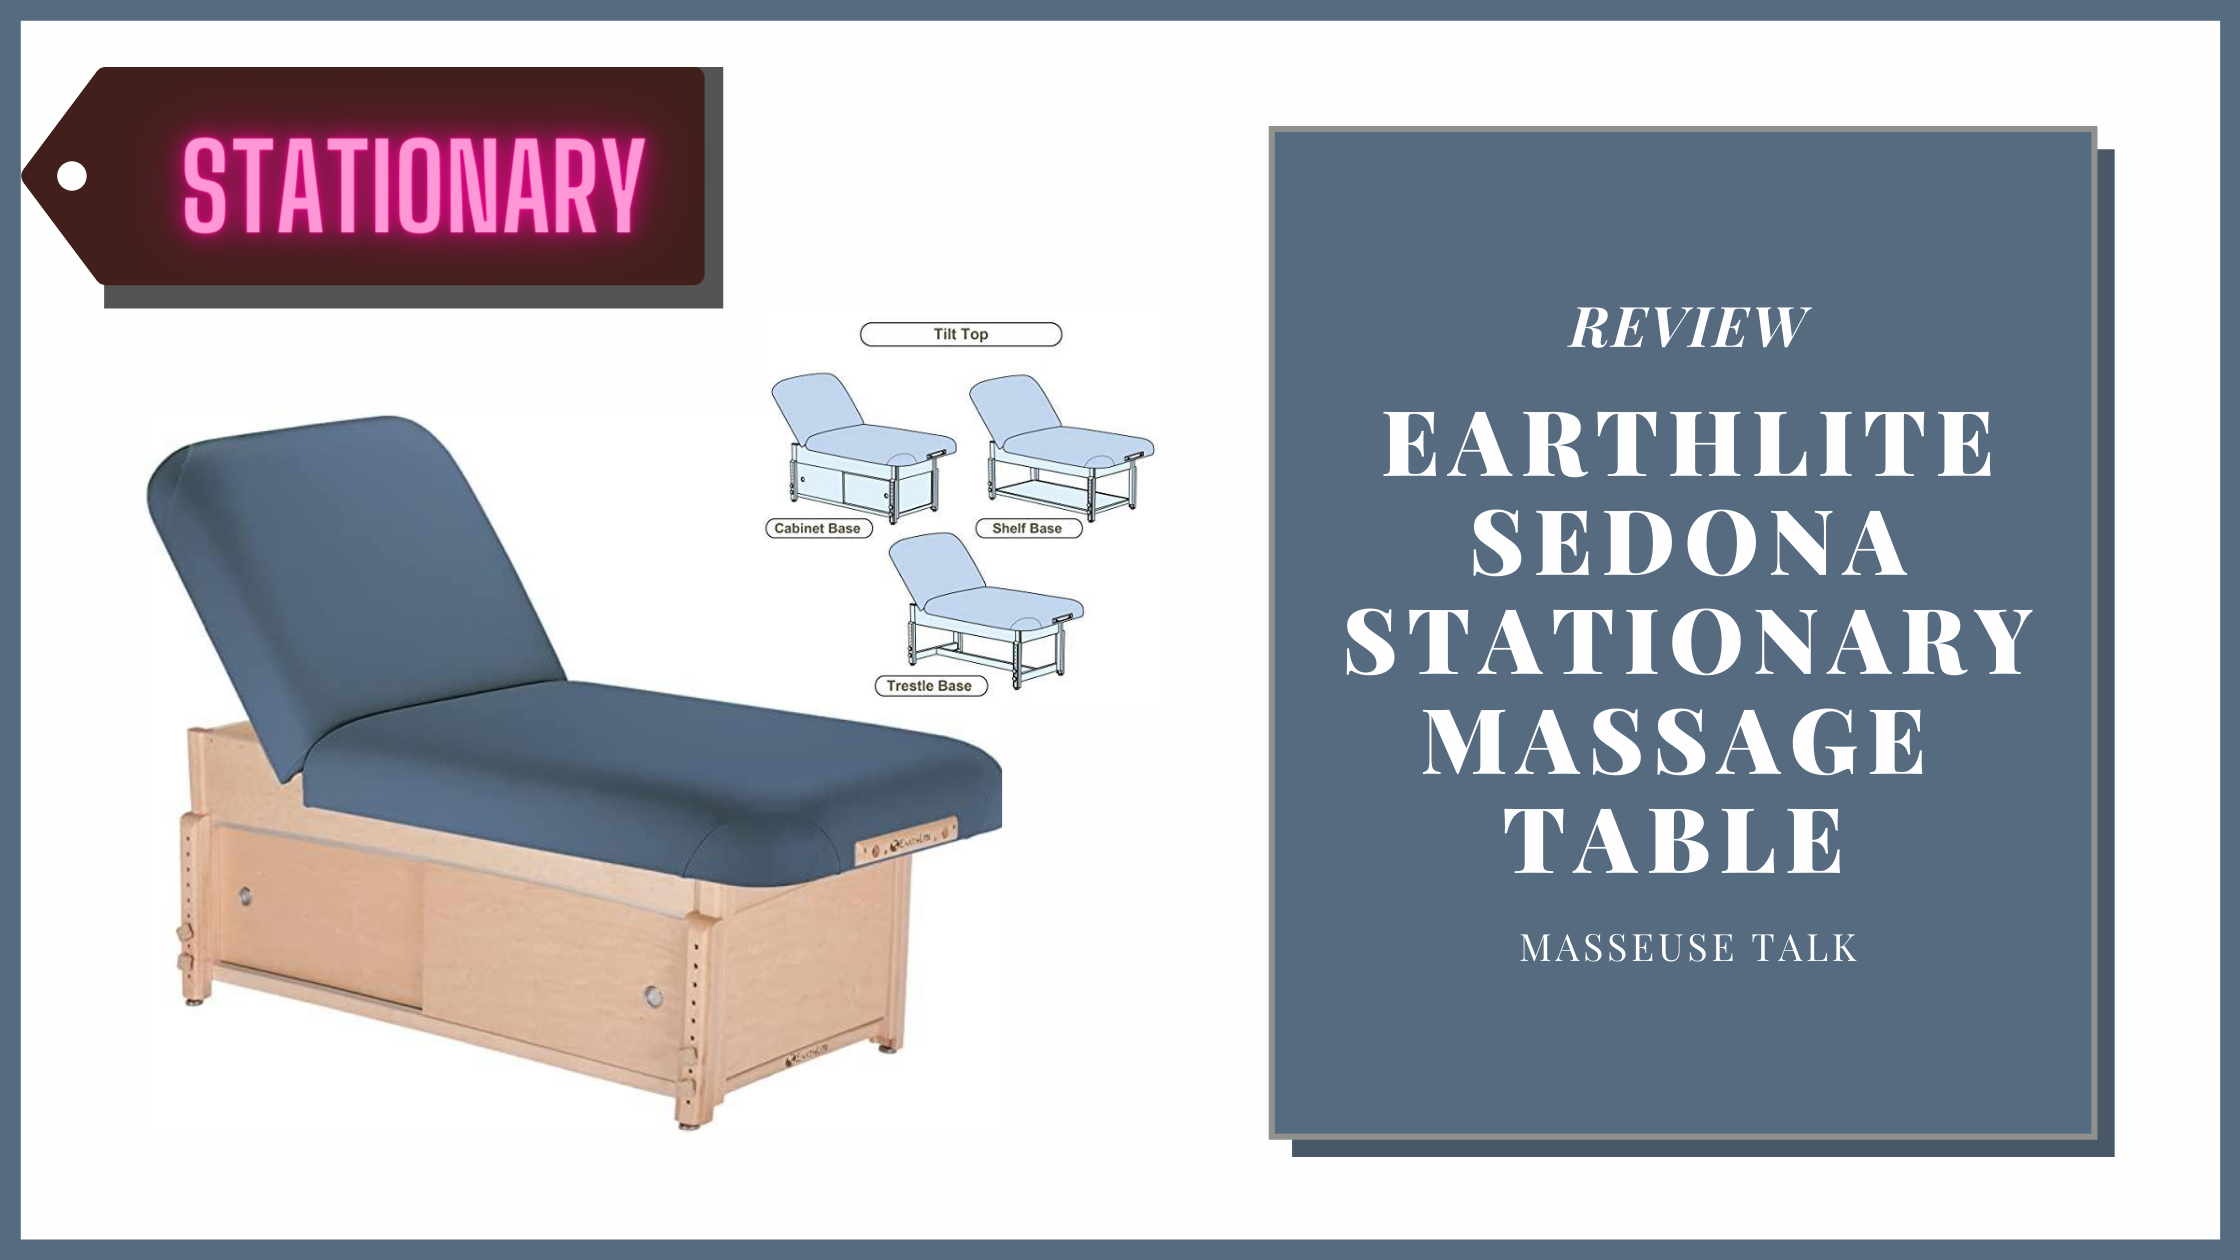 Earthlite Sedona Stationary Massage Table